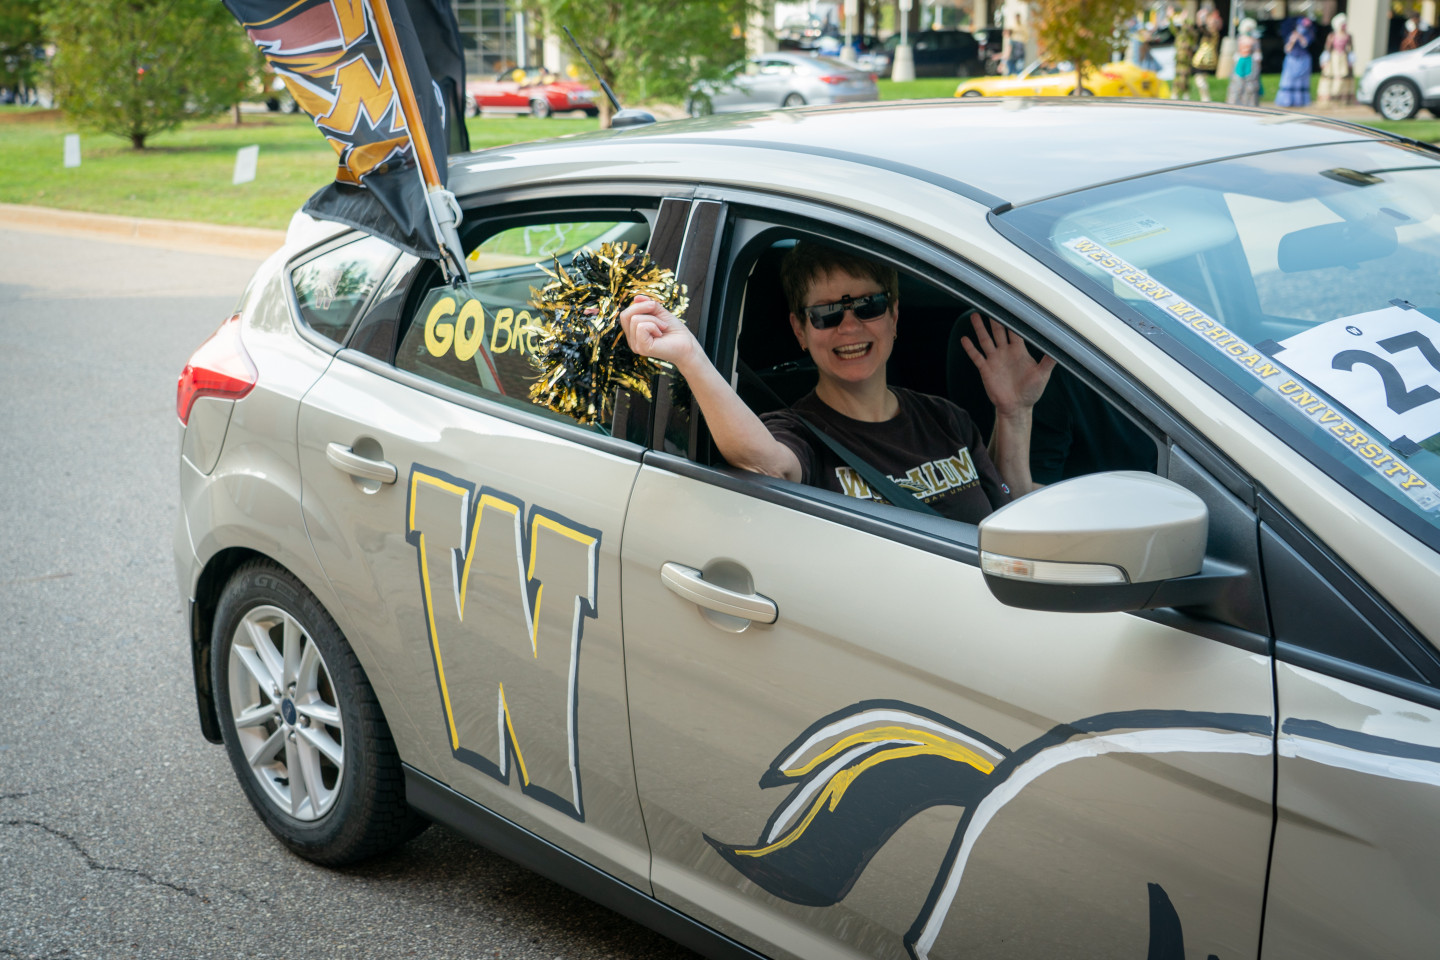 A passenger waves out the window of a car decorated in WMU spirit.